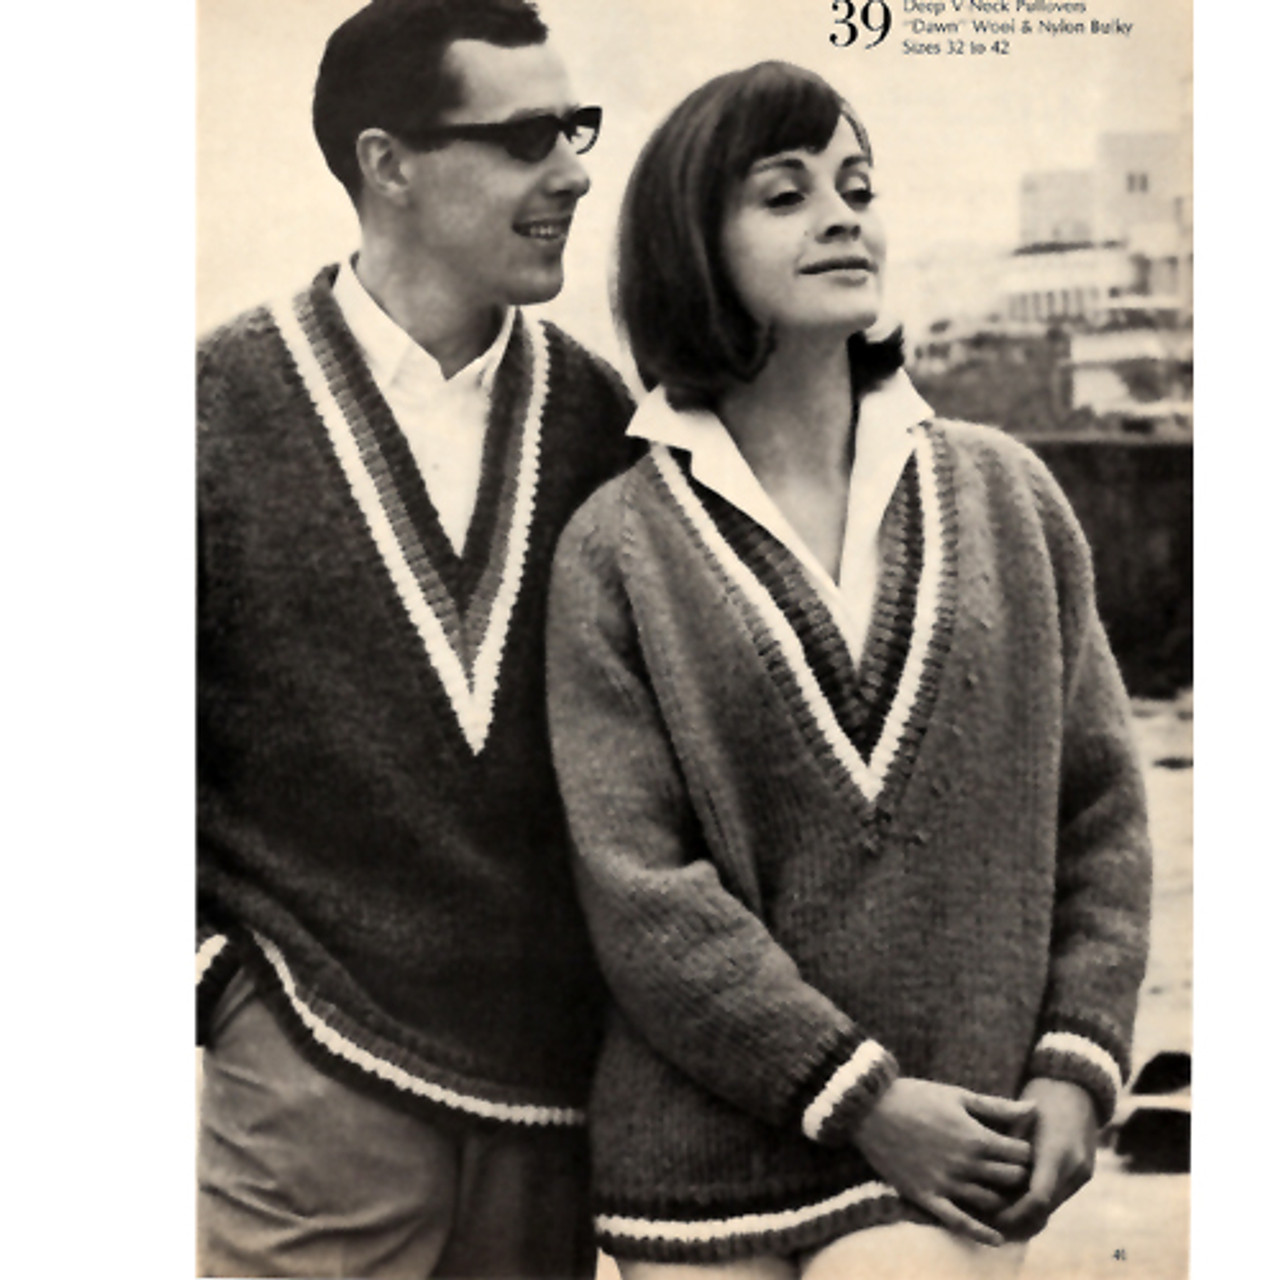 His Hers Knitted V-Neck Sweaters with Color Bands